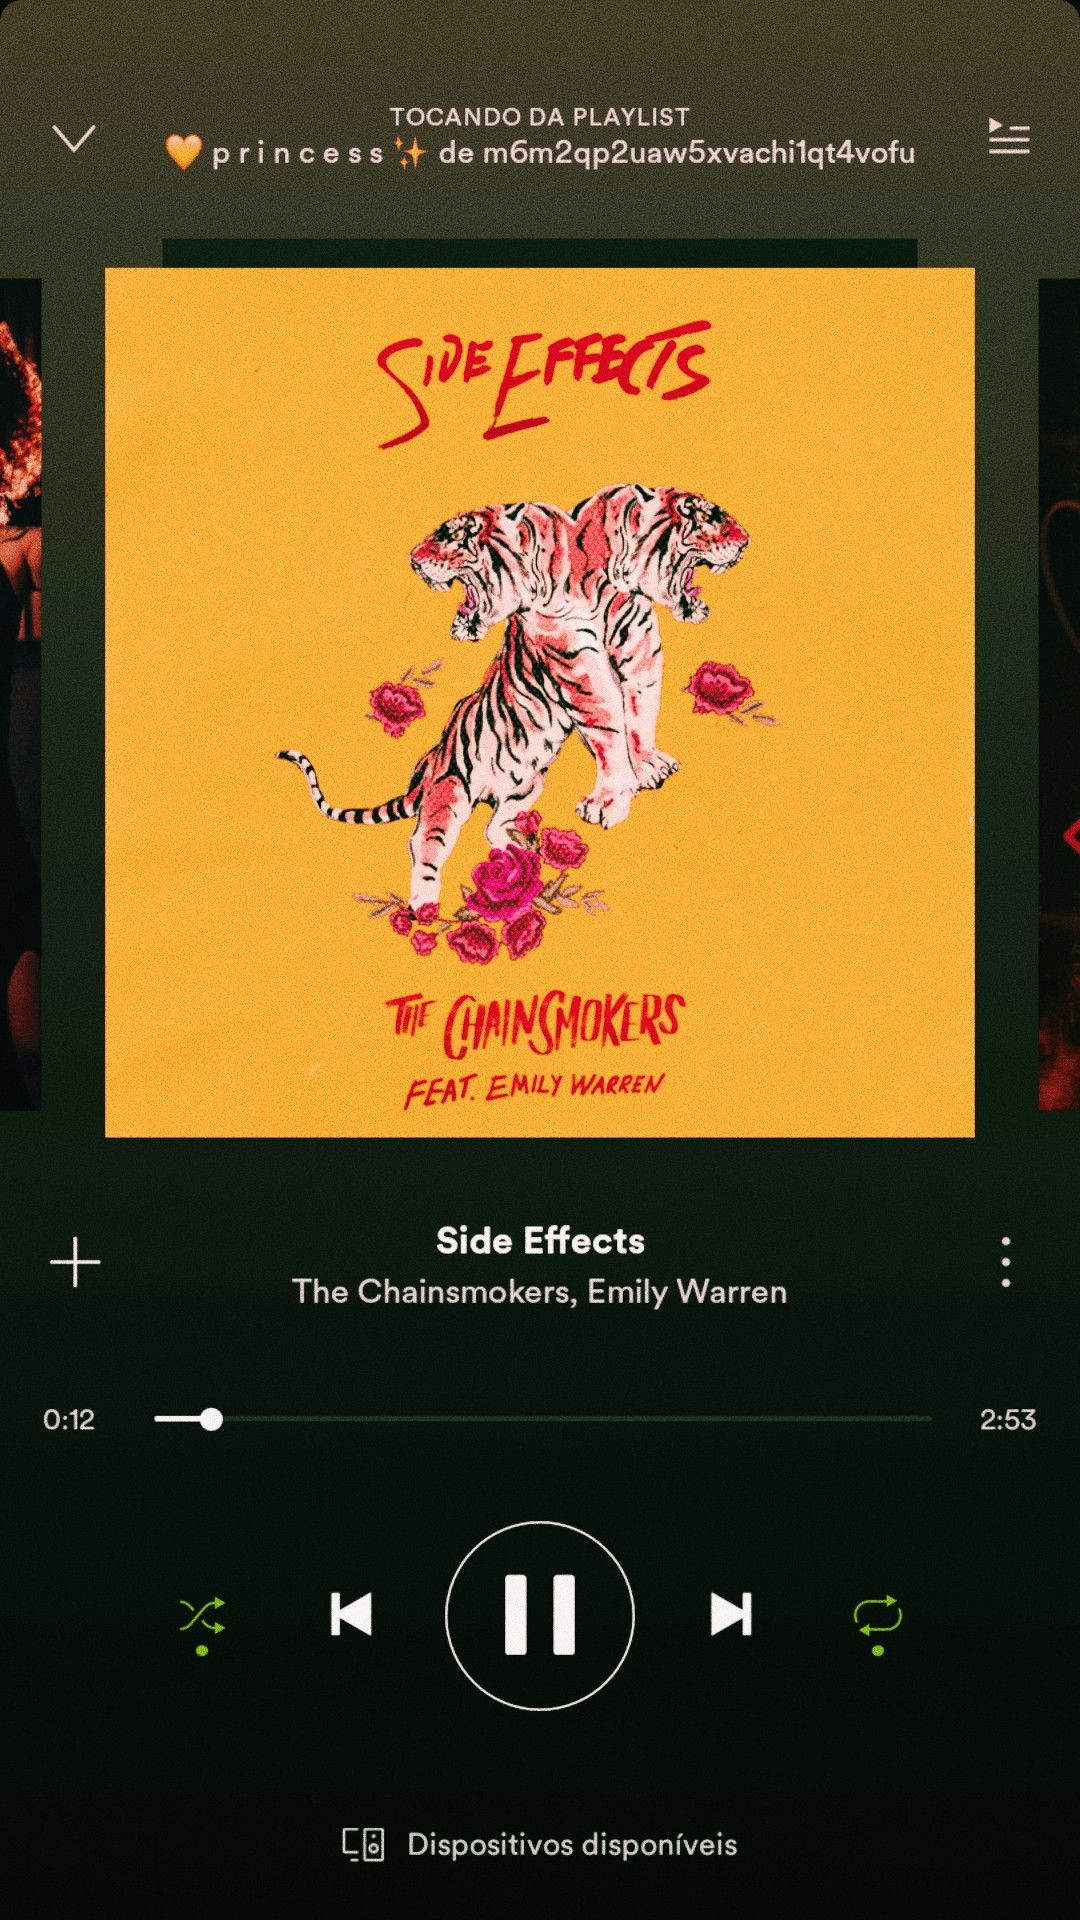 My Music Side Effects The Chainsmokers Emilly Warren